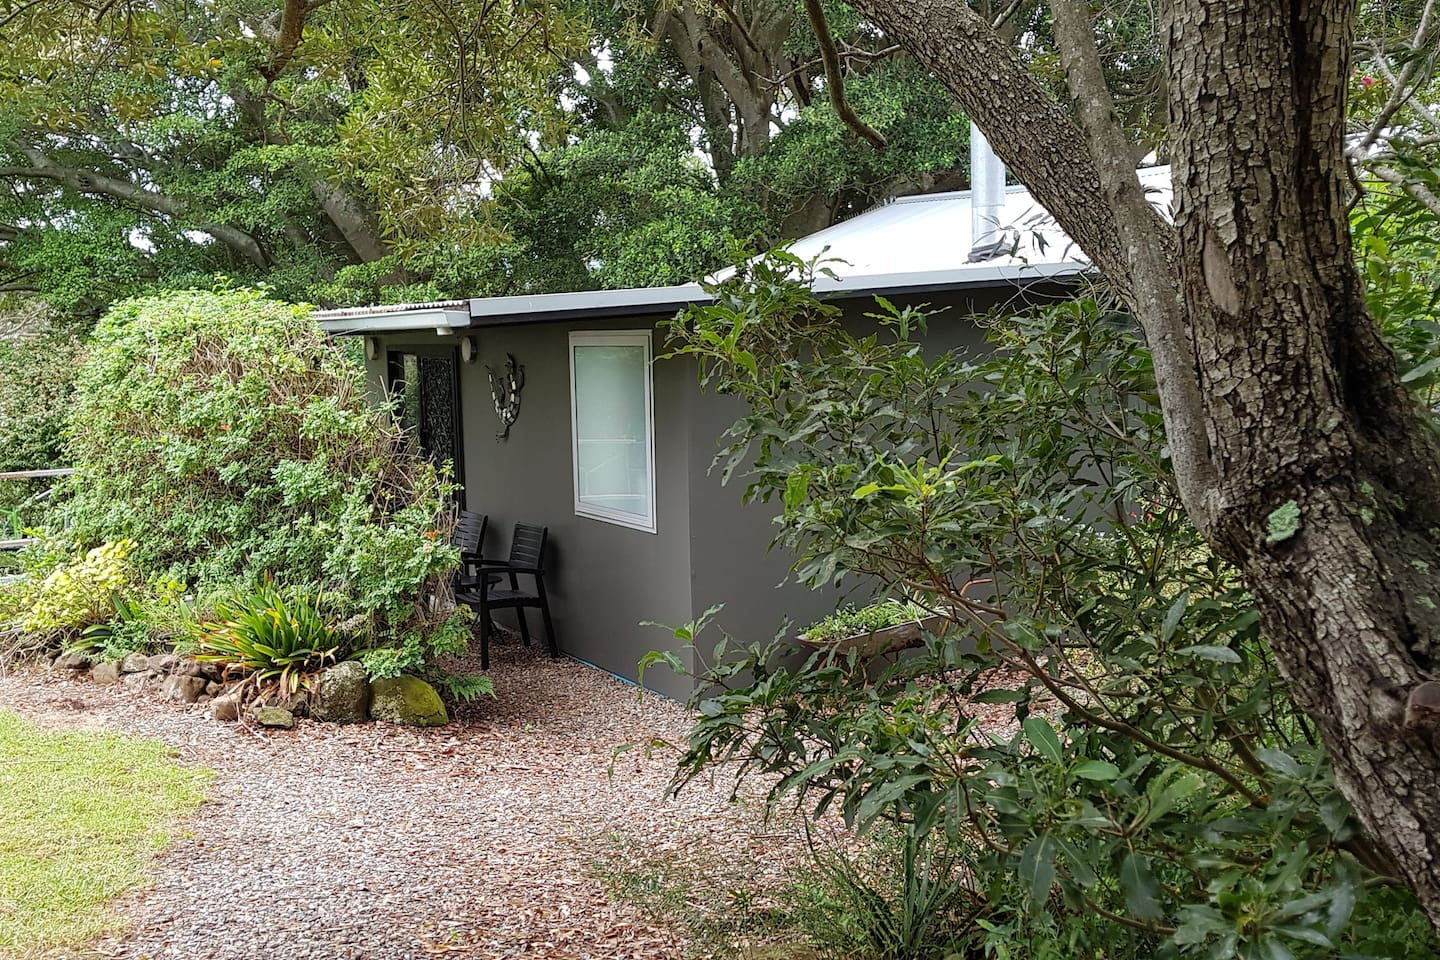 Entrance to kookaburra cottage is along the gravel pathway..